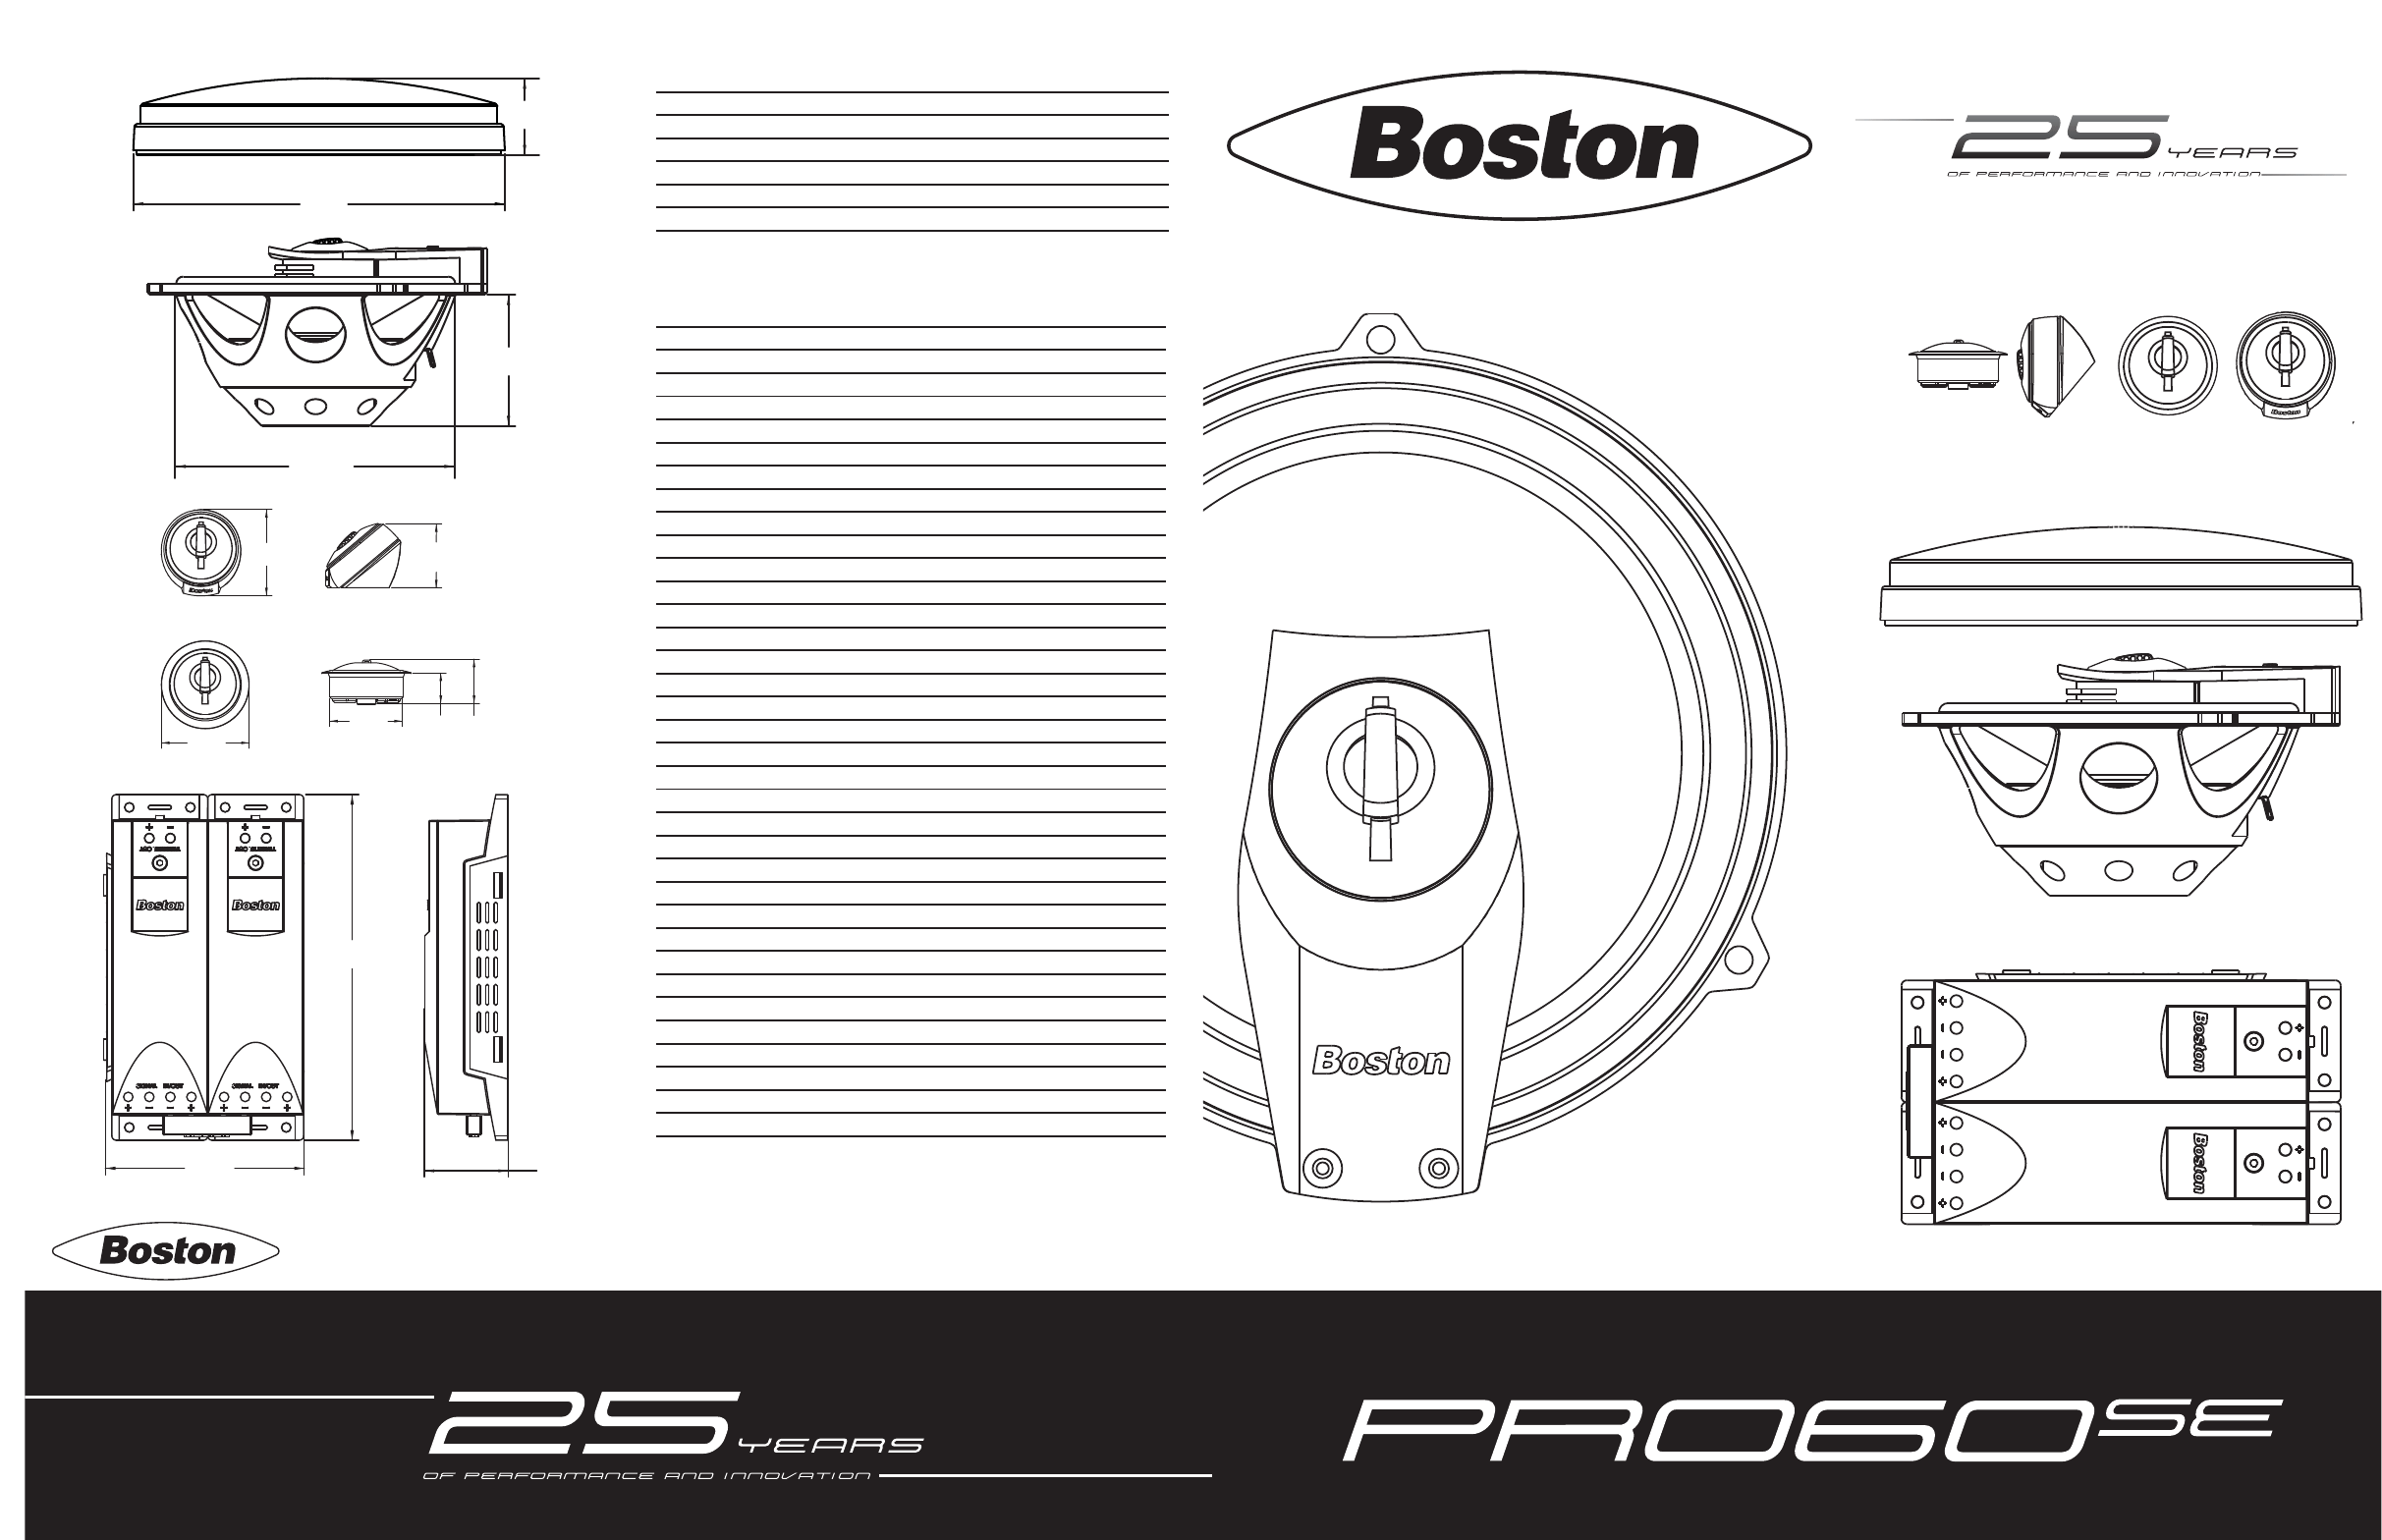 Boston Acoustics Car Speaker PRO60SE User Guide